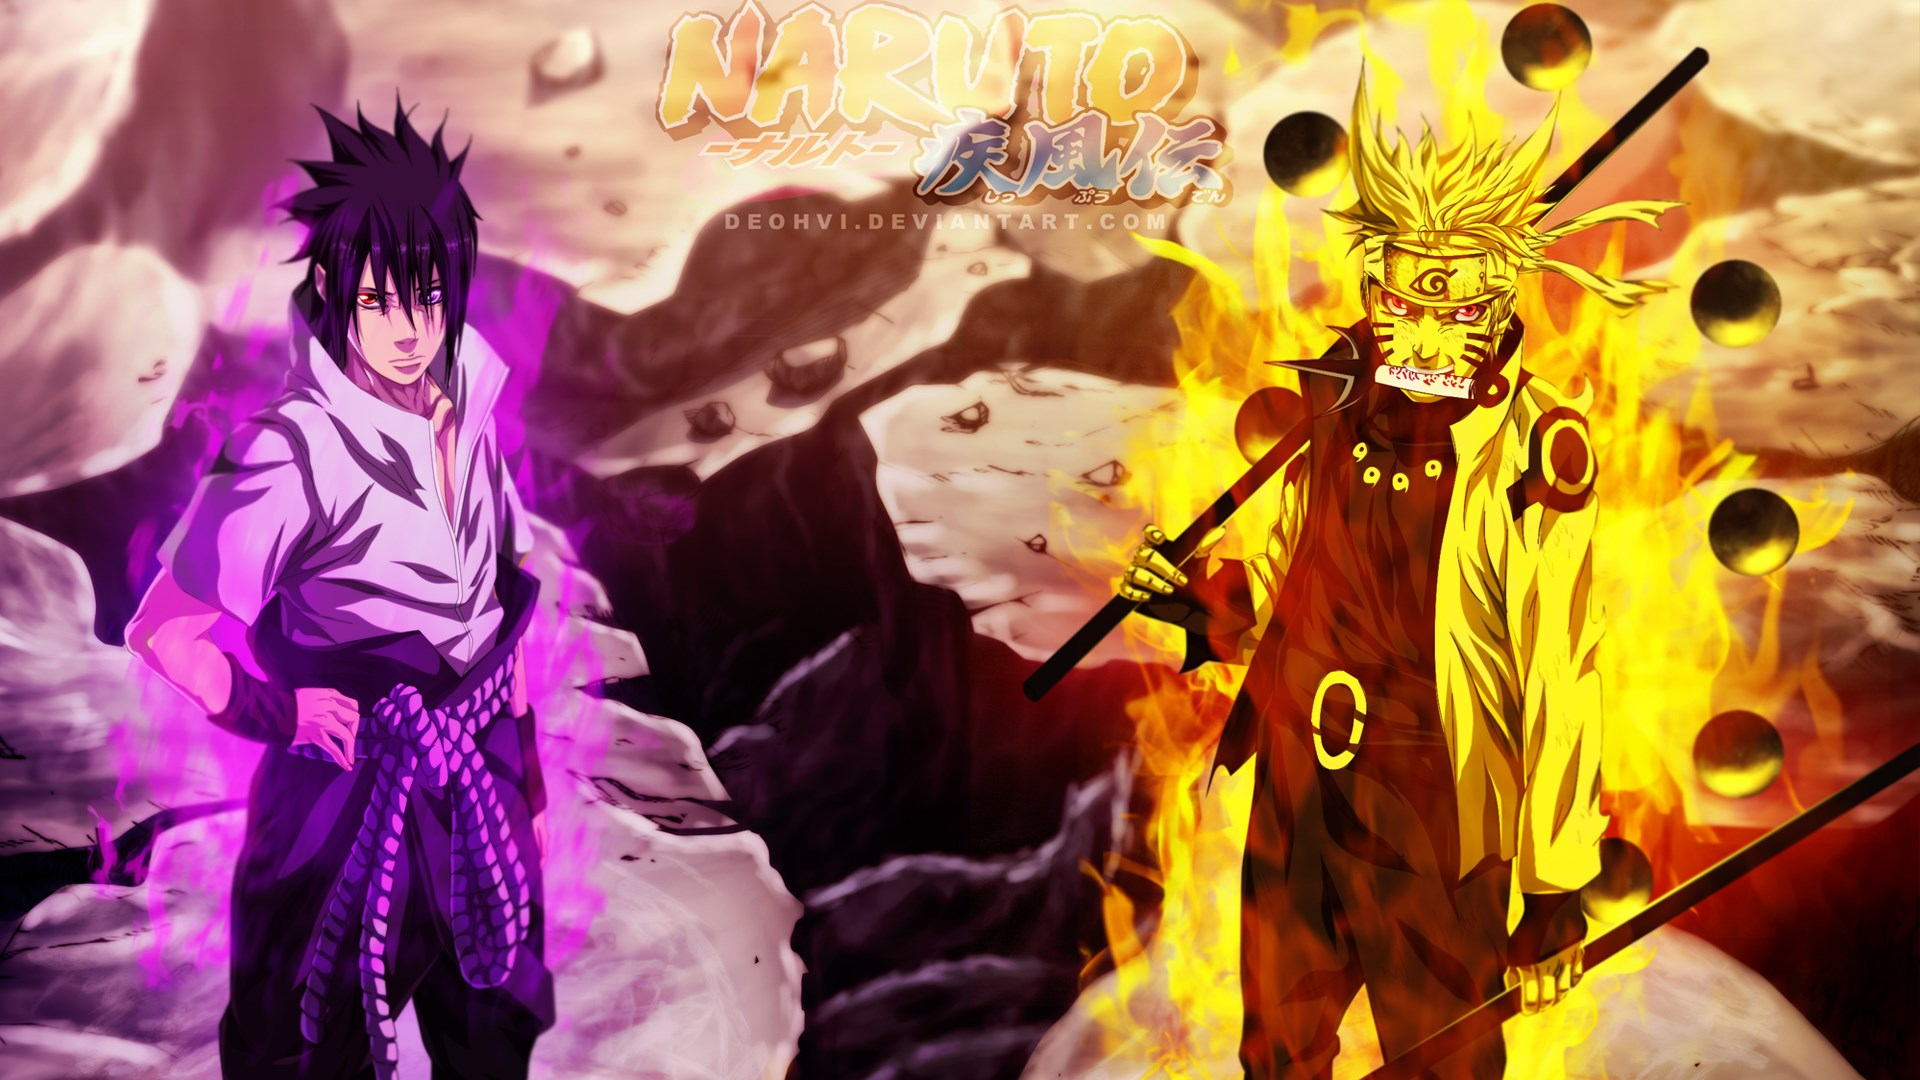 Adney-Nash-Williams-free-screensaver-for-sasuke-and-naruto-1920-x-1080-px-wallpaper-wp3602248